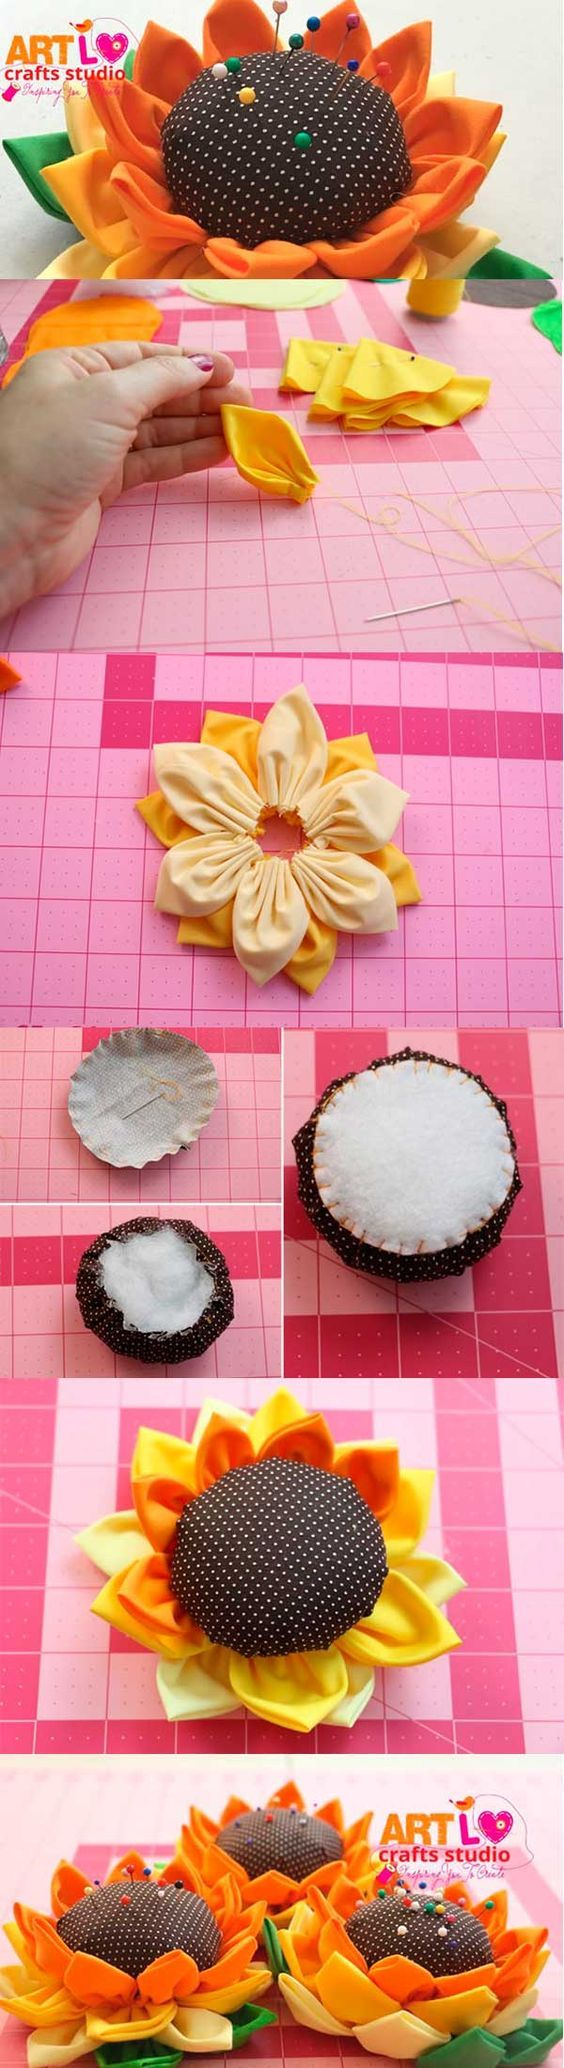 best crafts images on pinterest hand crafts creative ideas